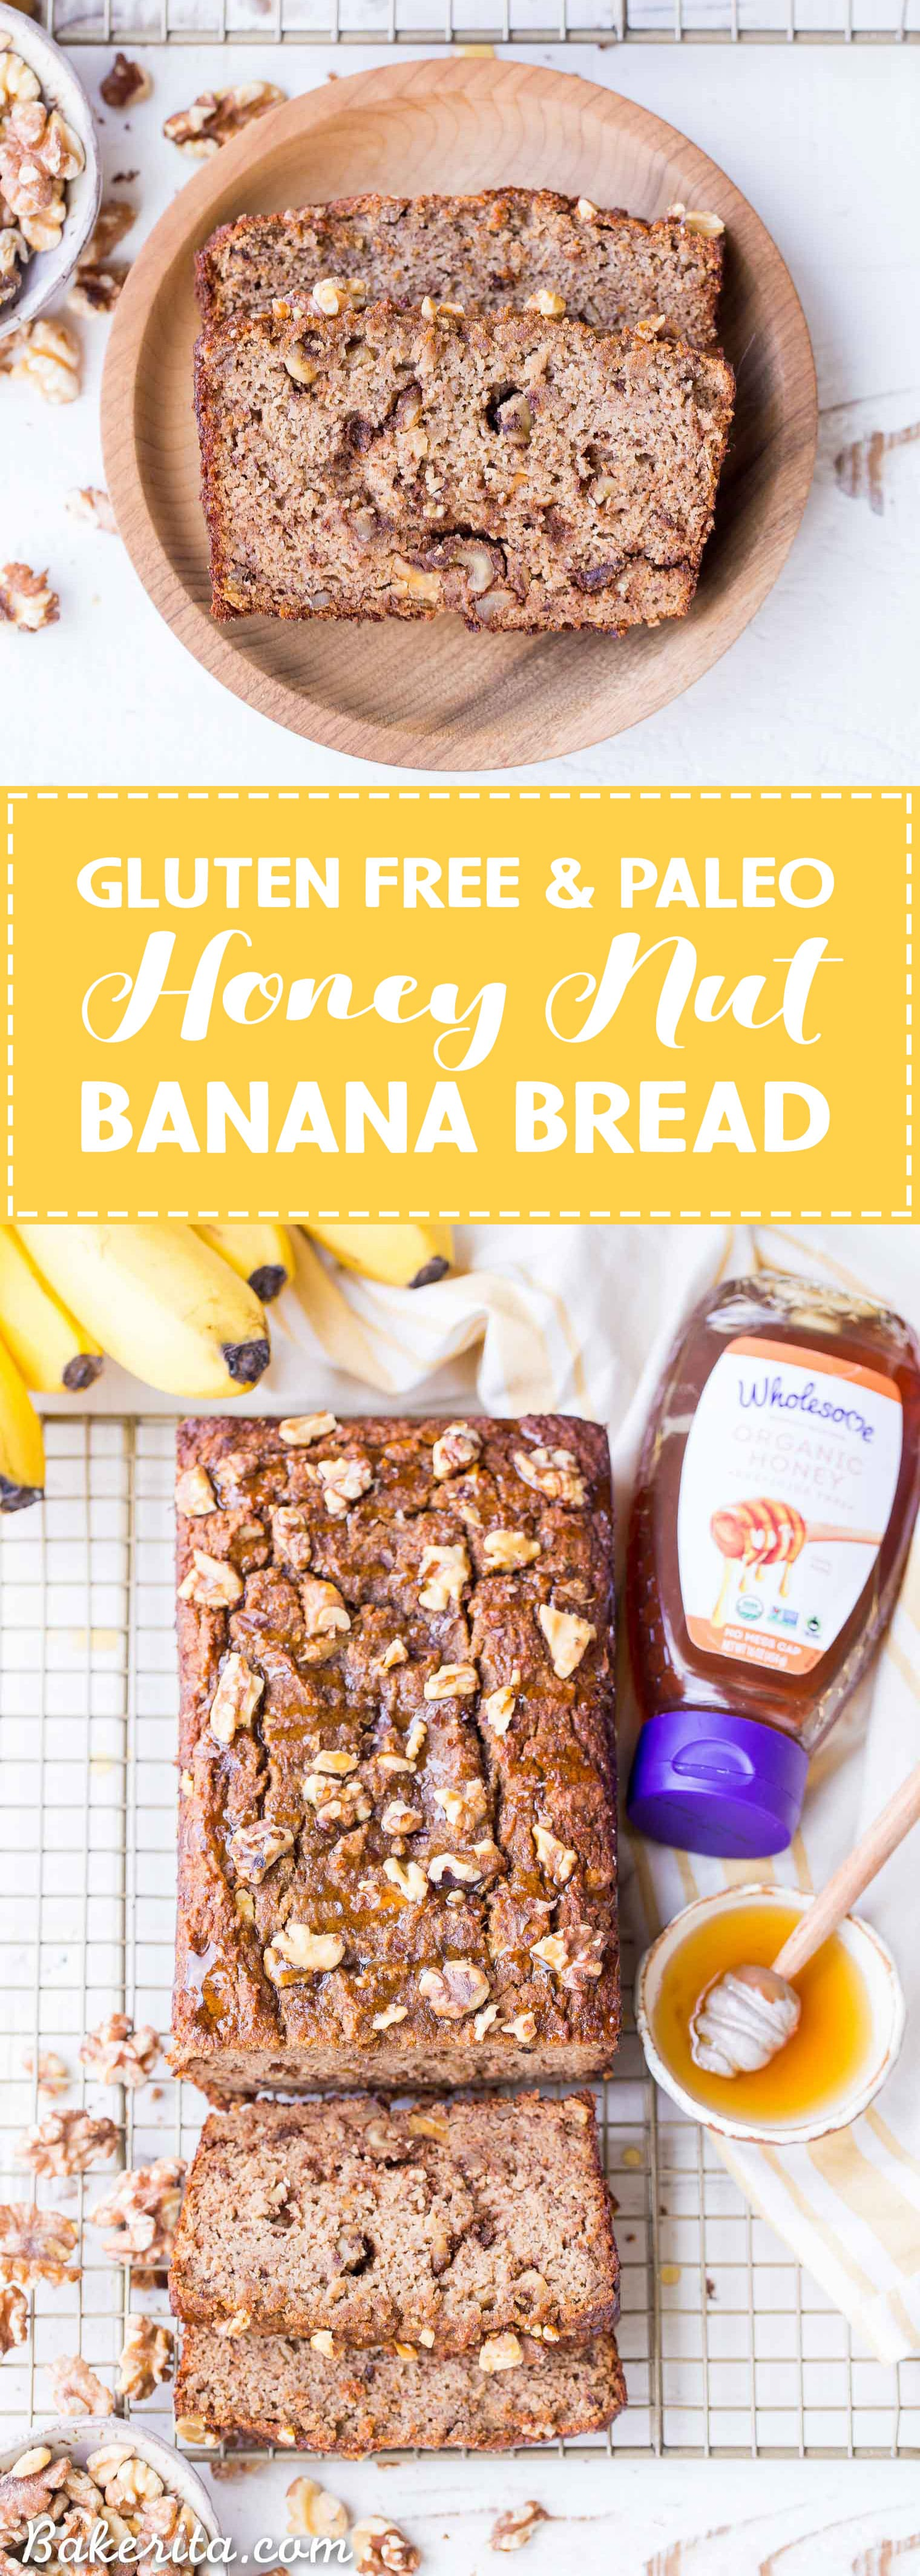 This Paleo Honey Nut Banana Bread is a deliciously healthy breakfast or snack that will help keep you satiatedfor hours. It's a lightly honey-sweetened treat that's gluten-free and grain-free and packed with crunchy walnuts.